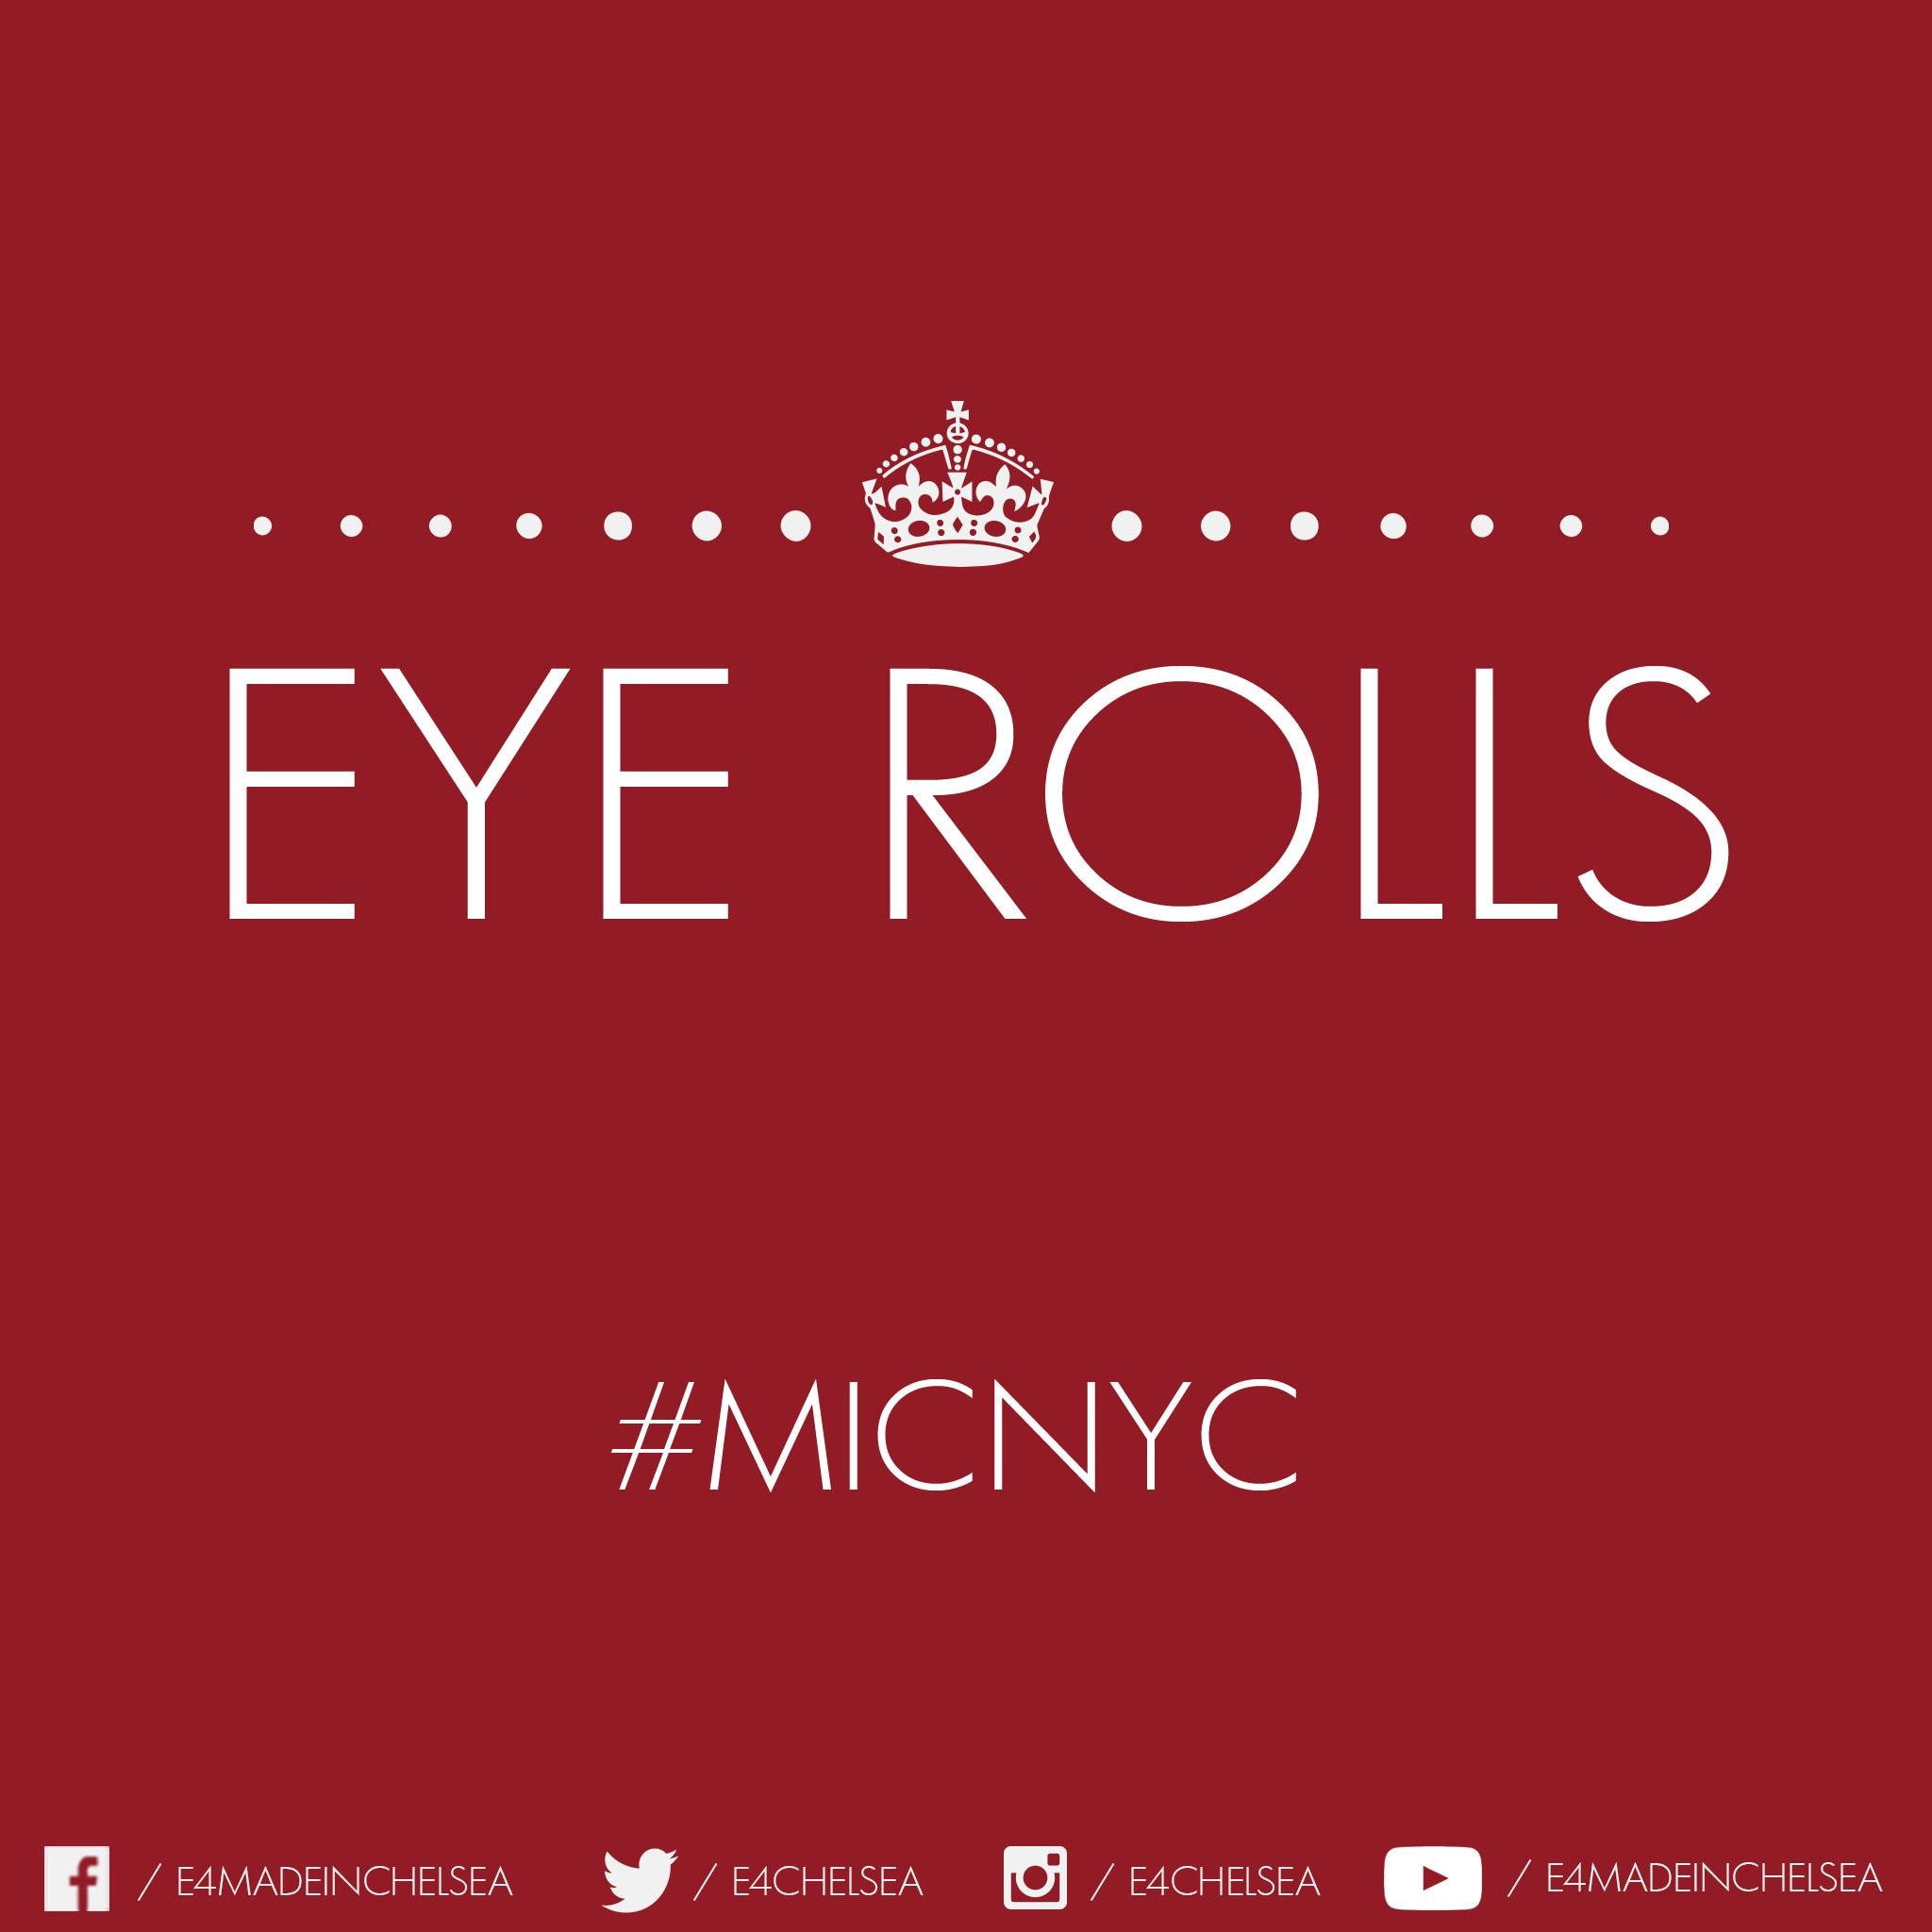 Bring on the #eyerolls in #MiCNYC... http://t.co/FFlRQhQedp